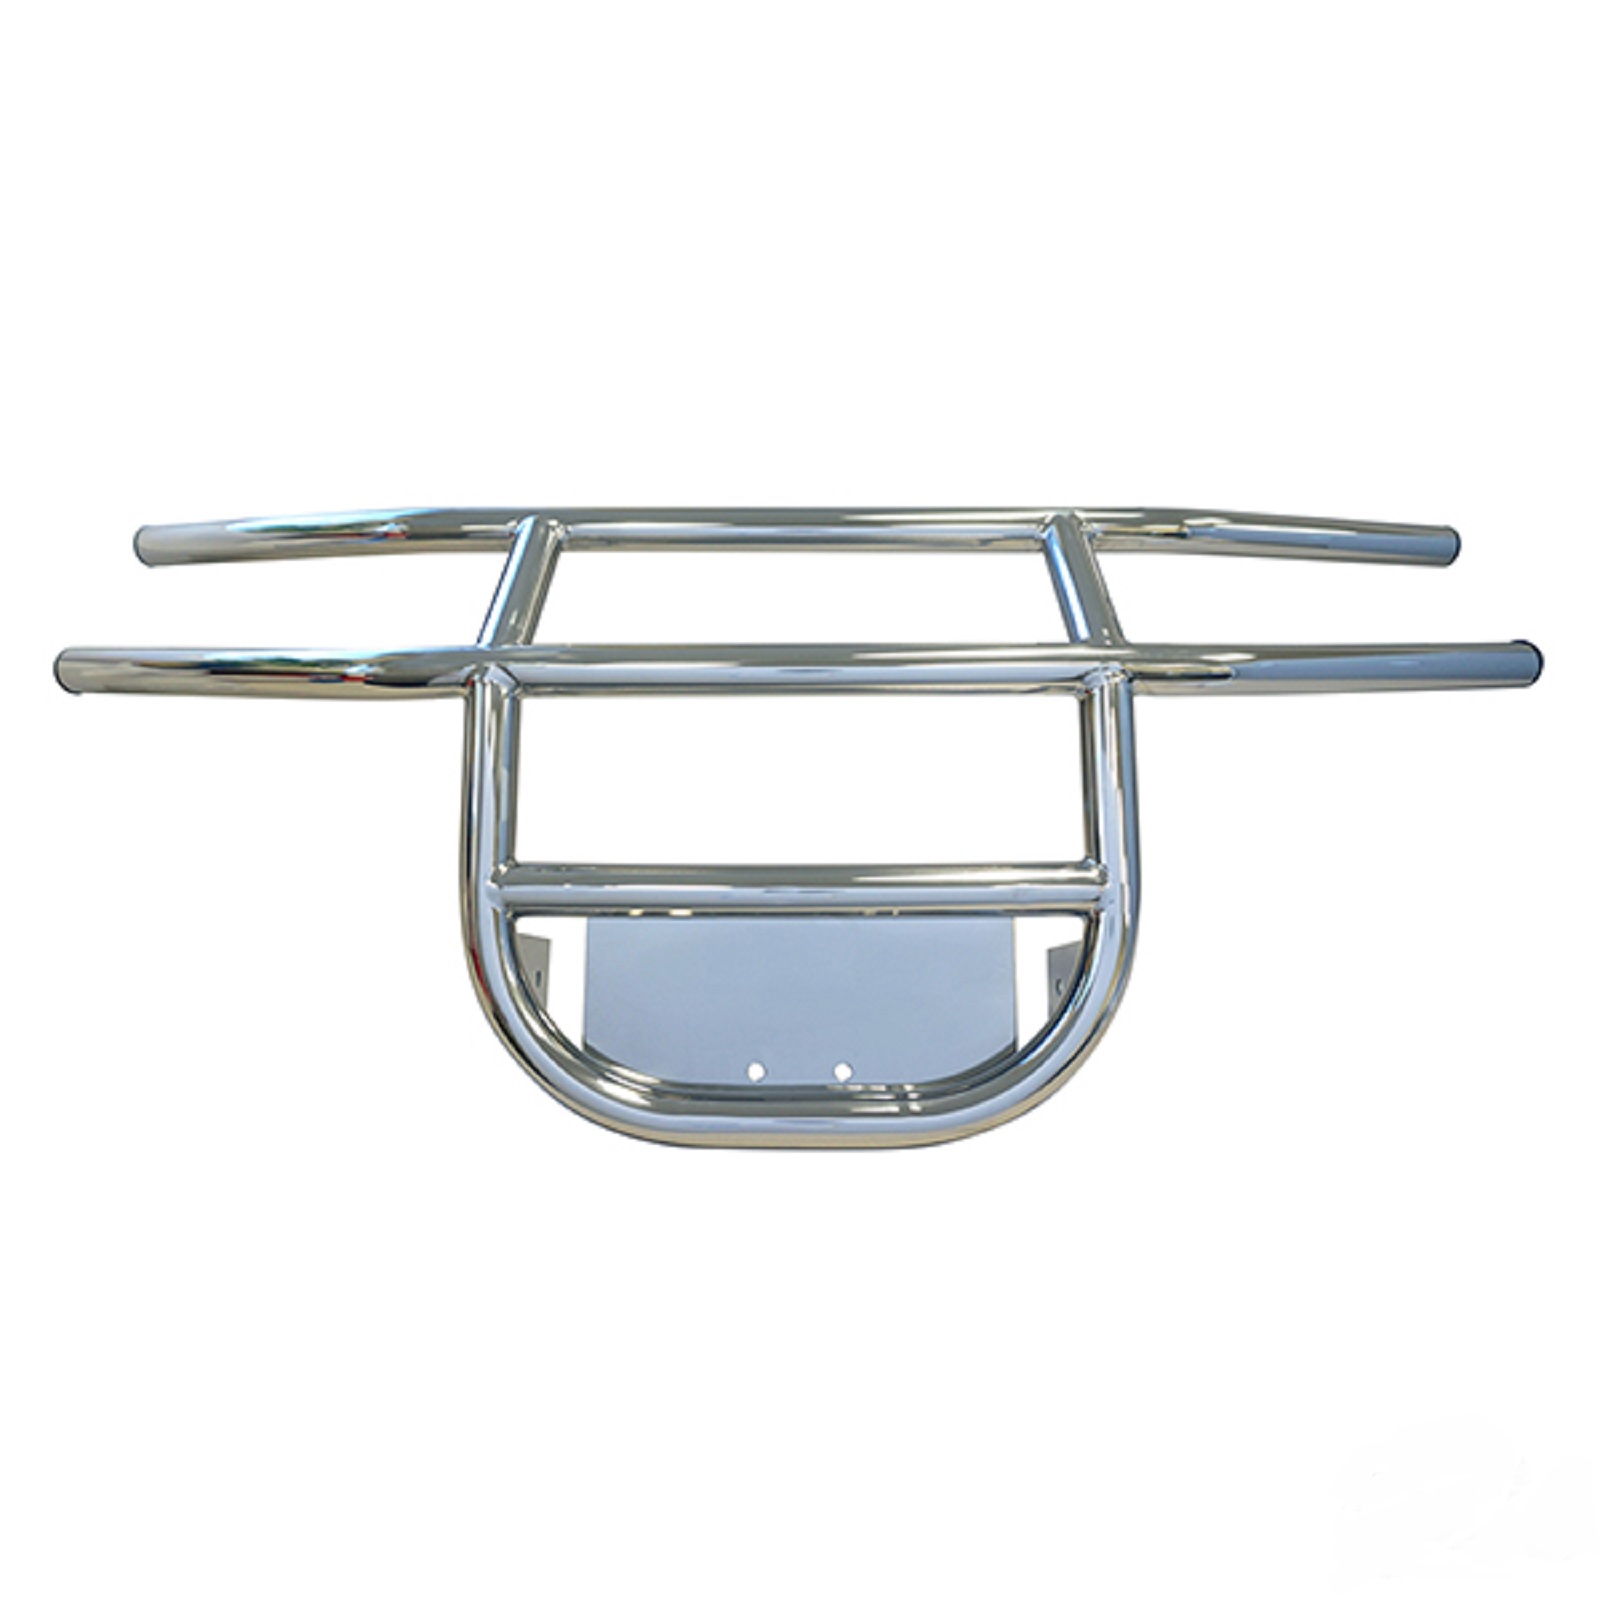 Yamaha G14 G16 Golf Cart 1995-2002 RHOX Front Bumper Brush Guard | Stainless